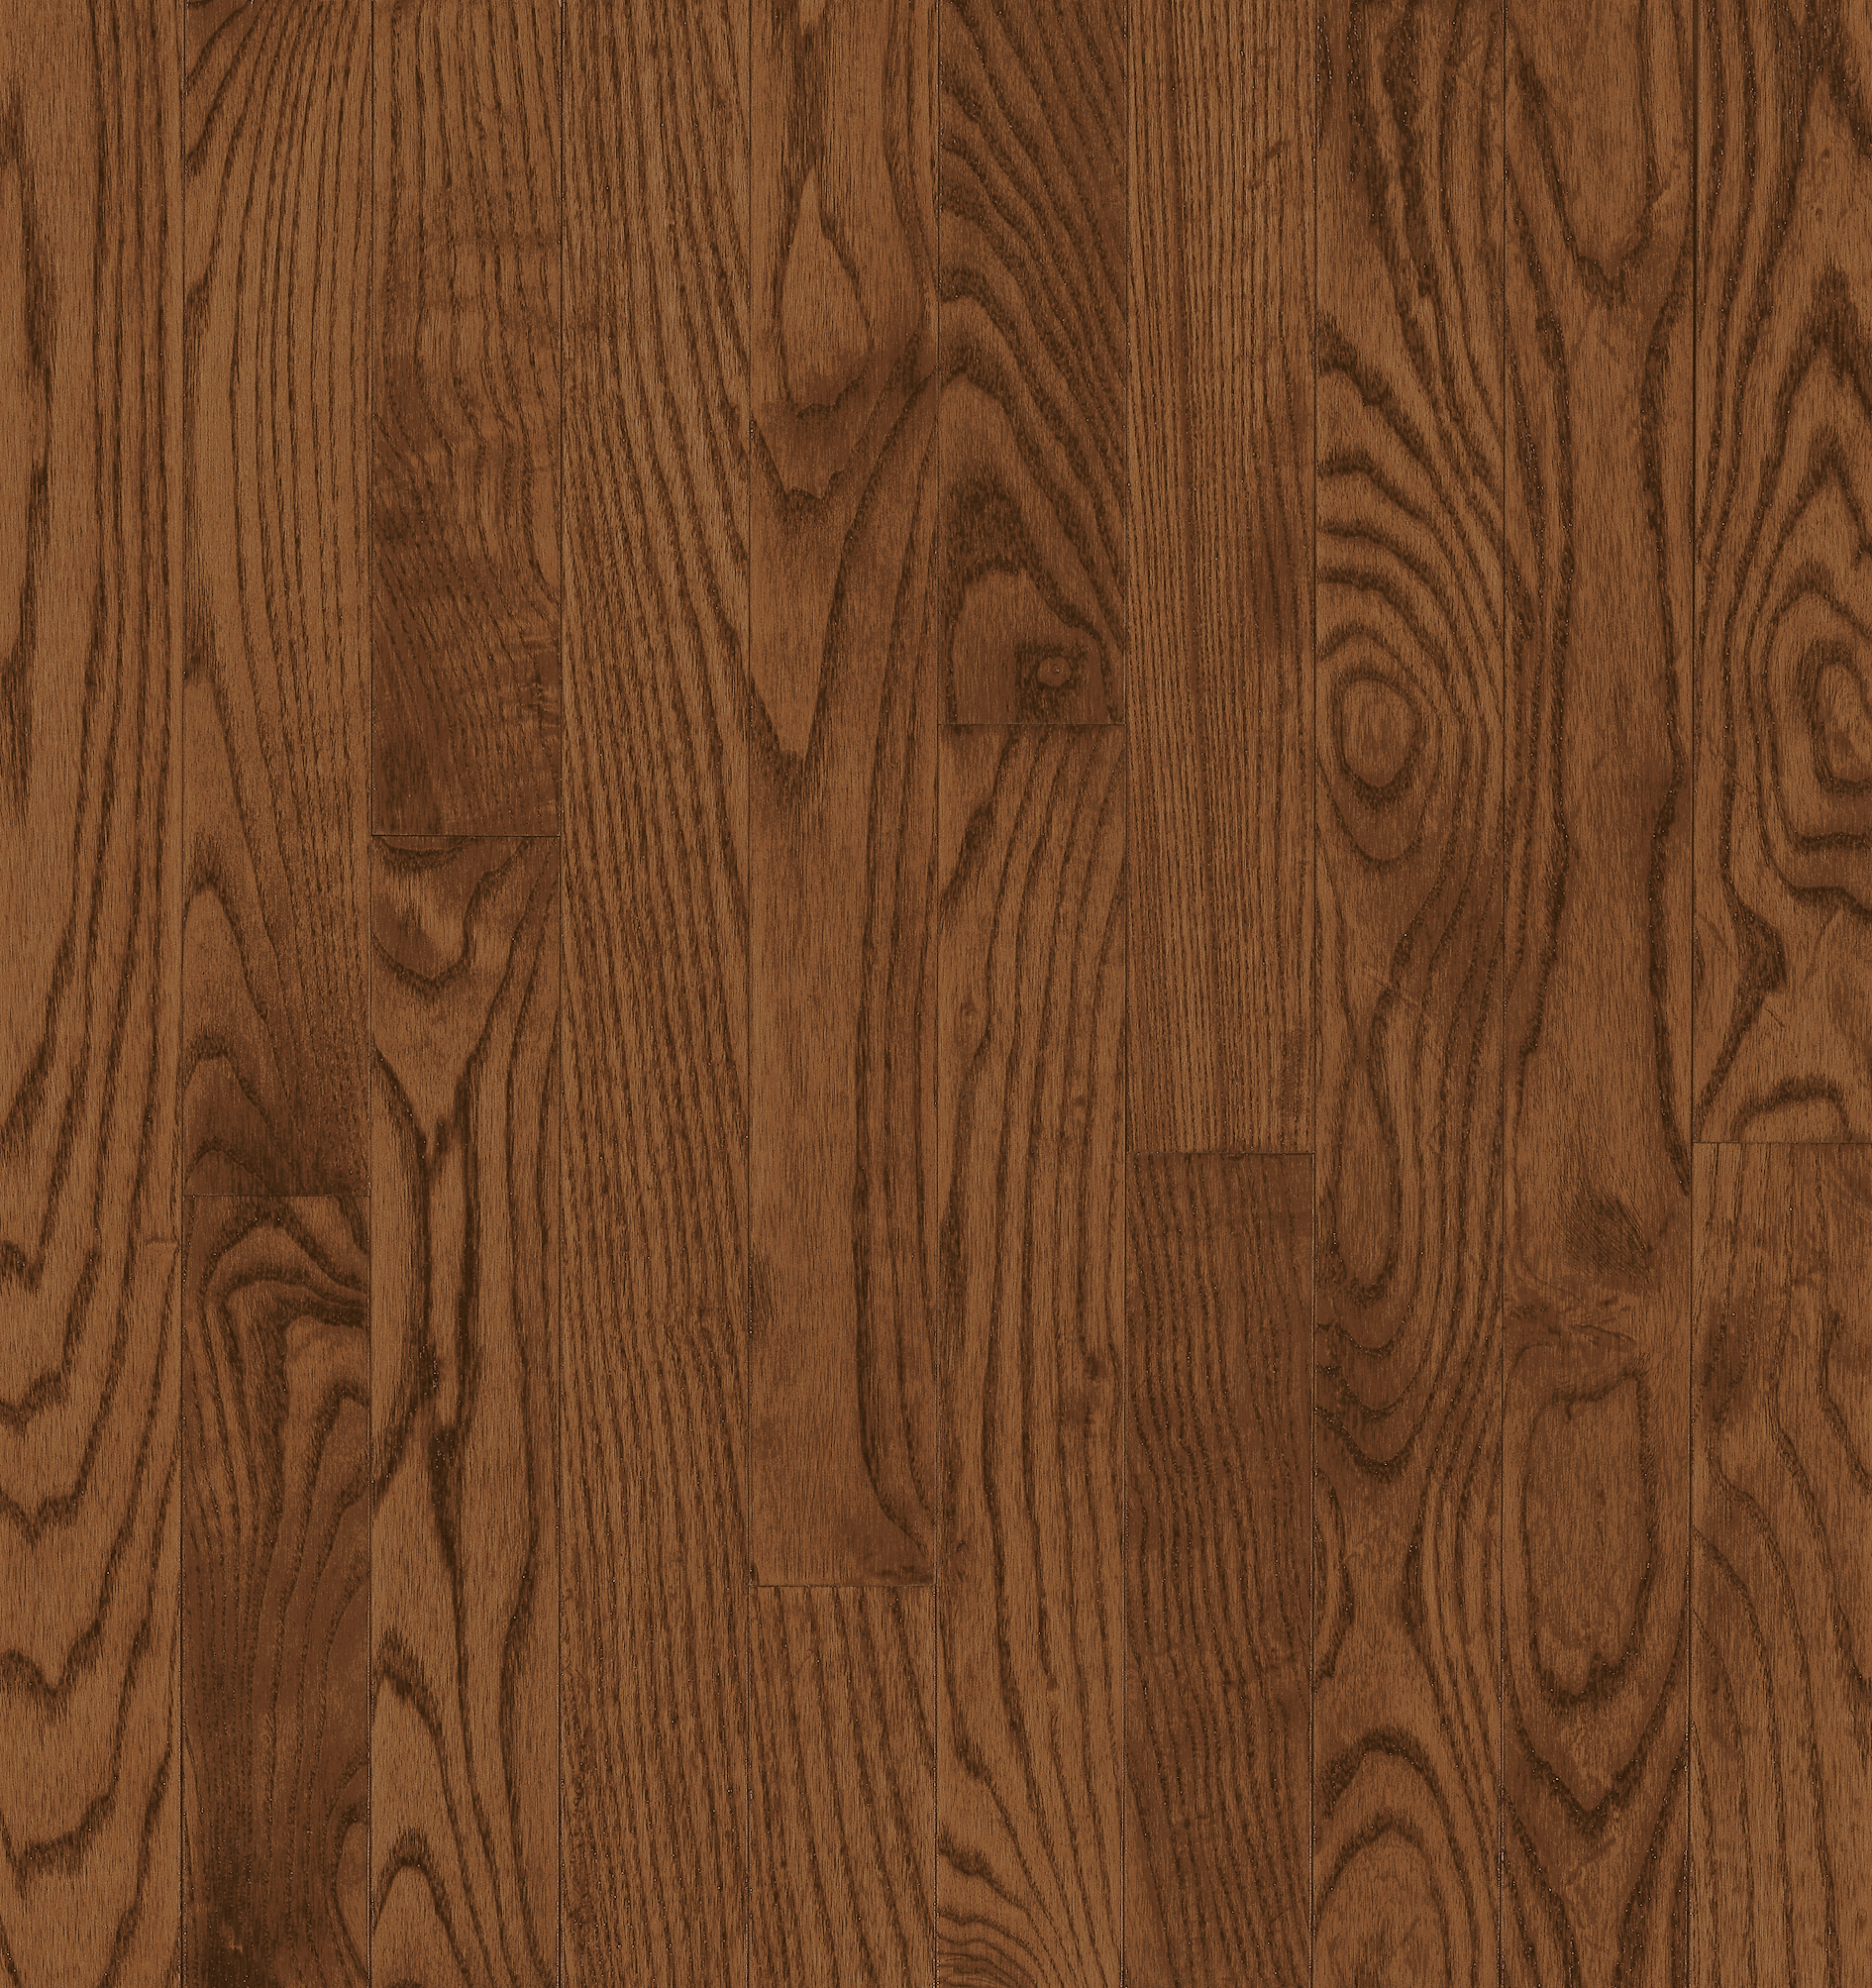 Manchester Strip & Plank Saddle Solid Hardwood C217